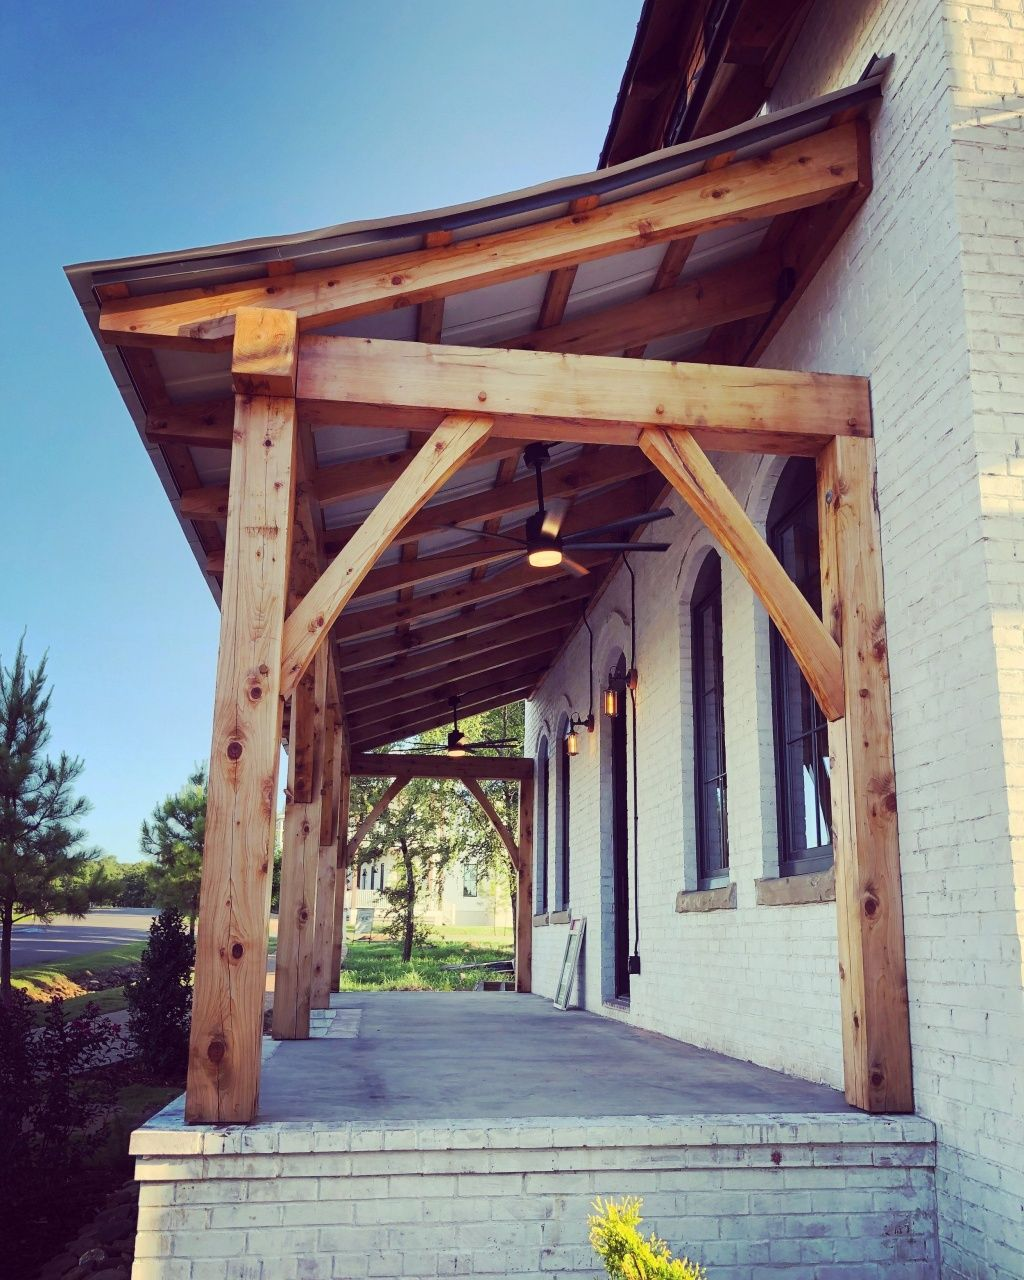 Building A Metal Lean To For Back Porch Mobile Home In 2020 Timber Frame Porch Porch Roof Design Porch Design